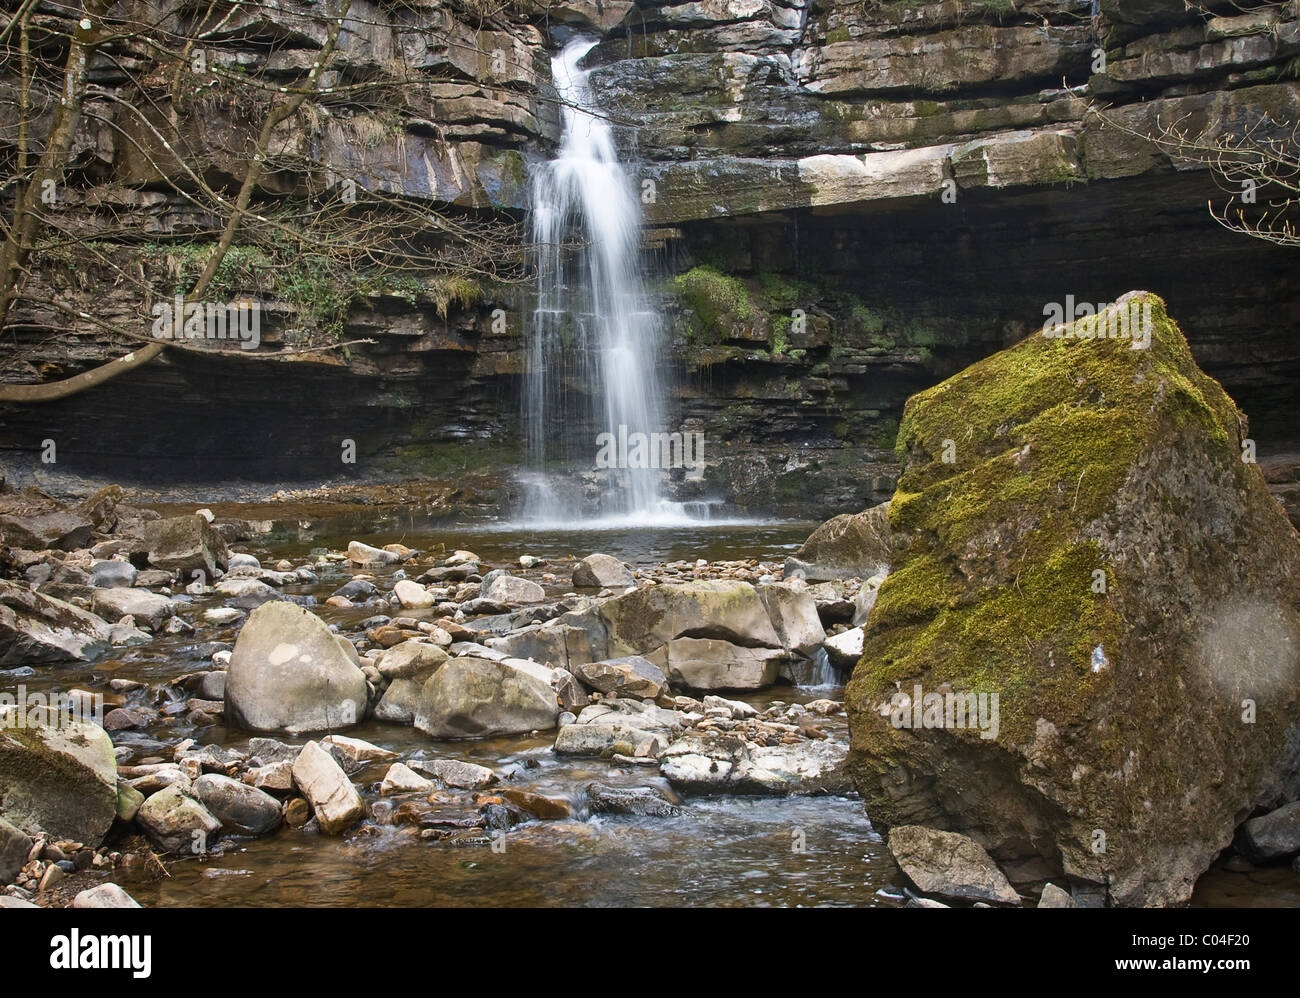 Summerhill Force at Gibson's Cave in Upper Teesdale. - Stock Image